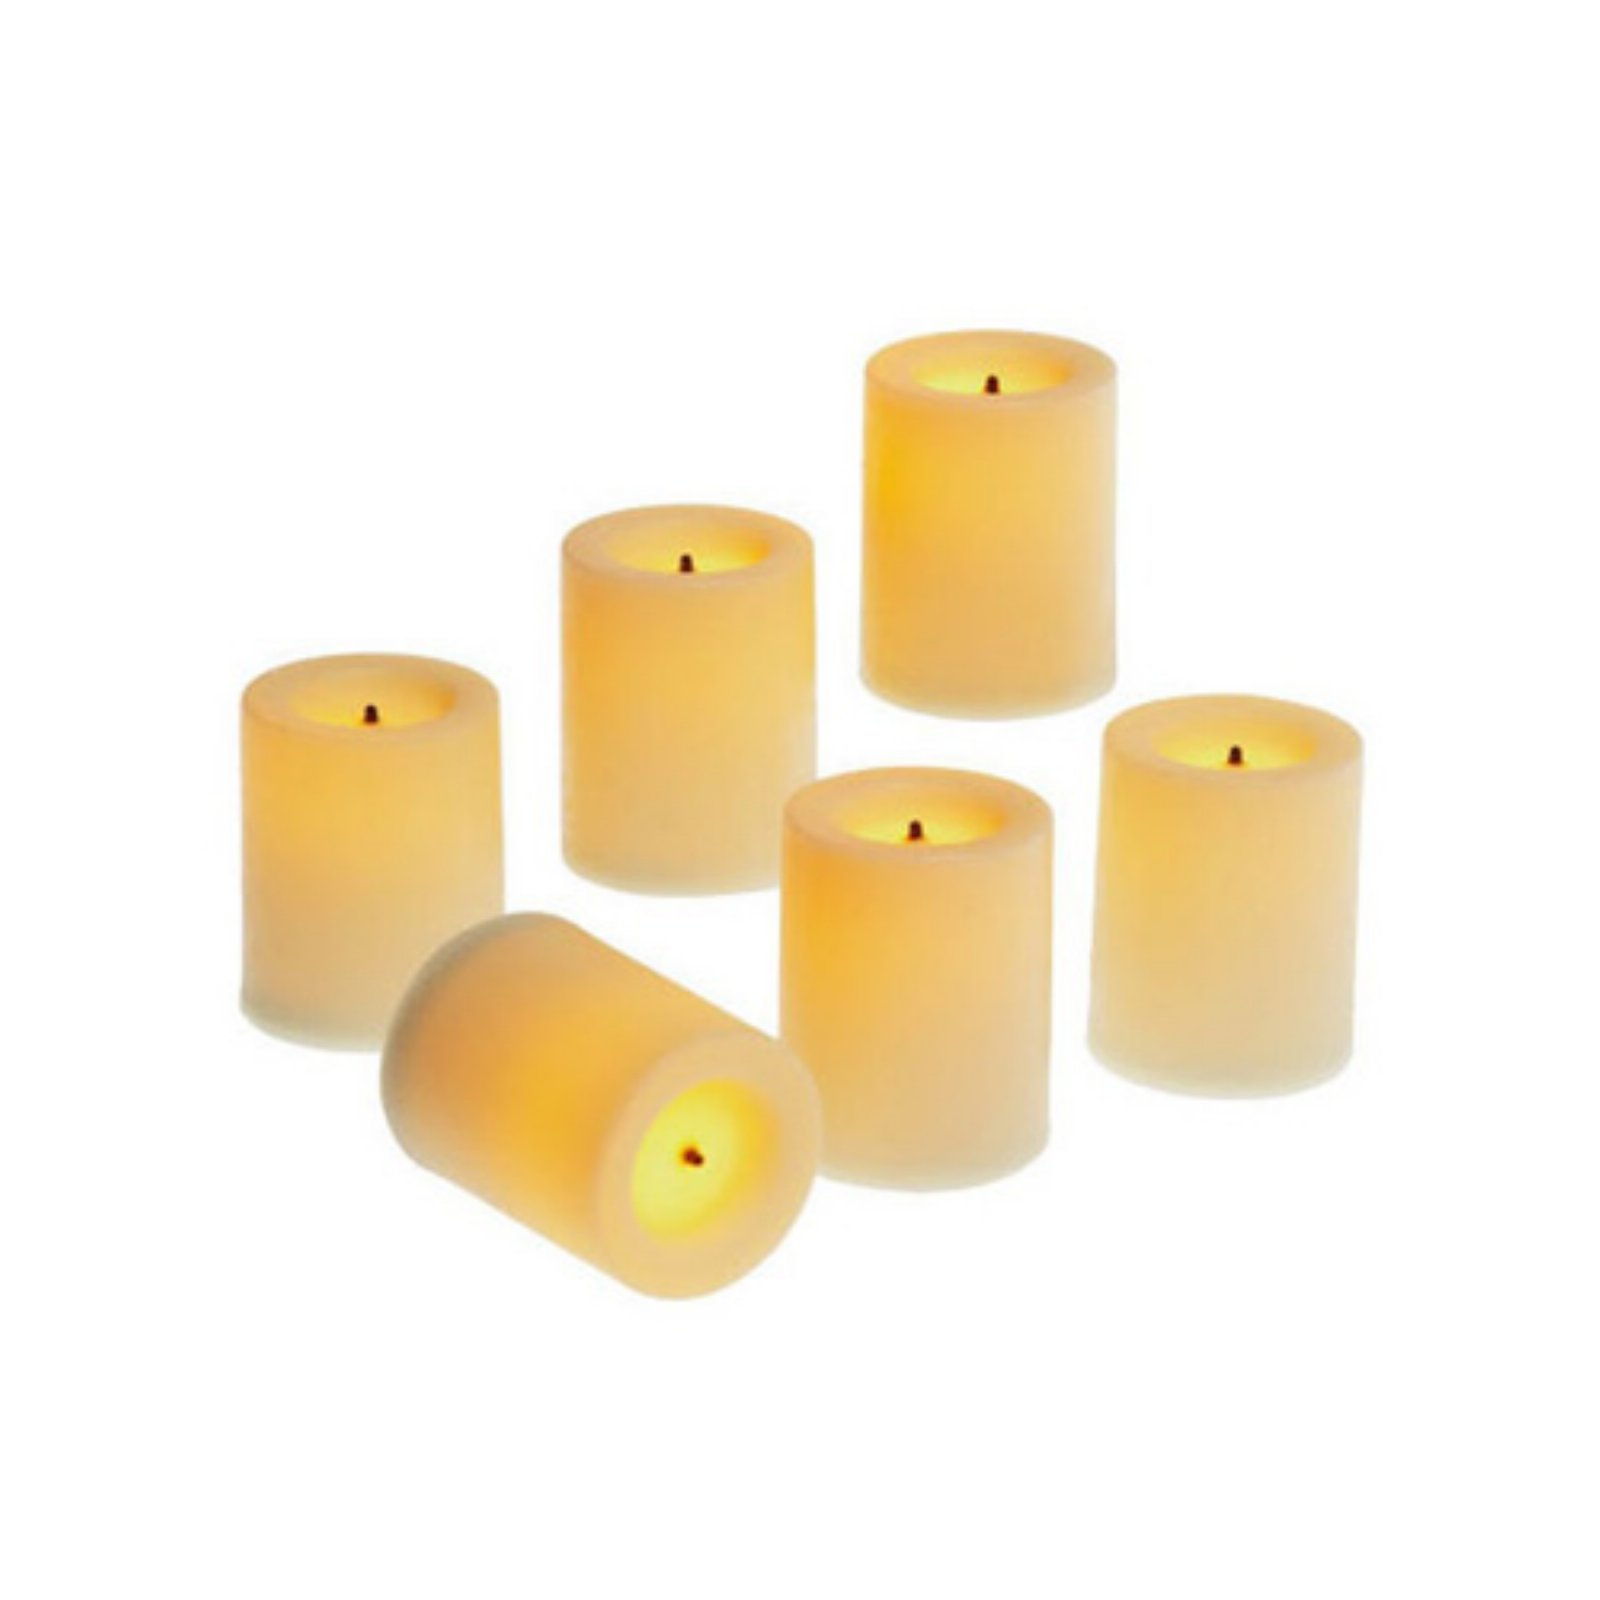 Candle Impressions 1.75 in. Wax Votive Candle - Set of 6